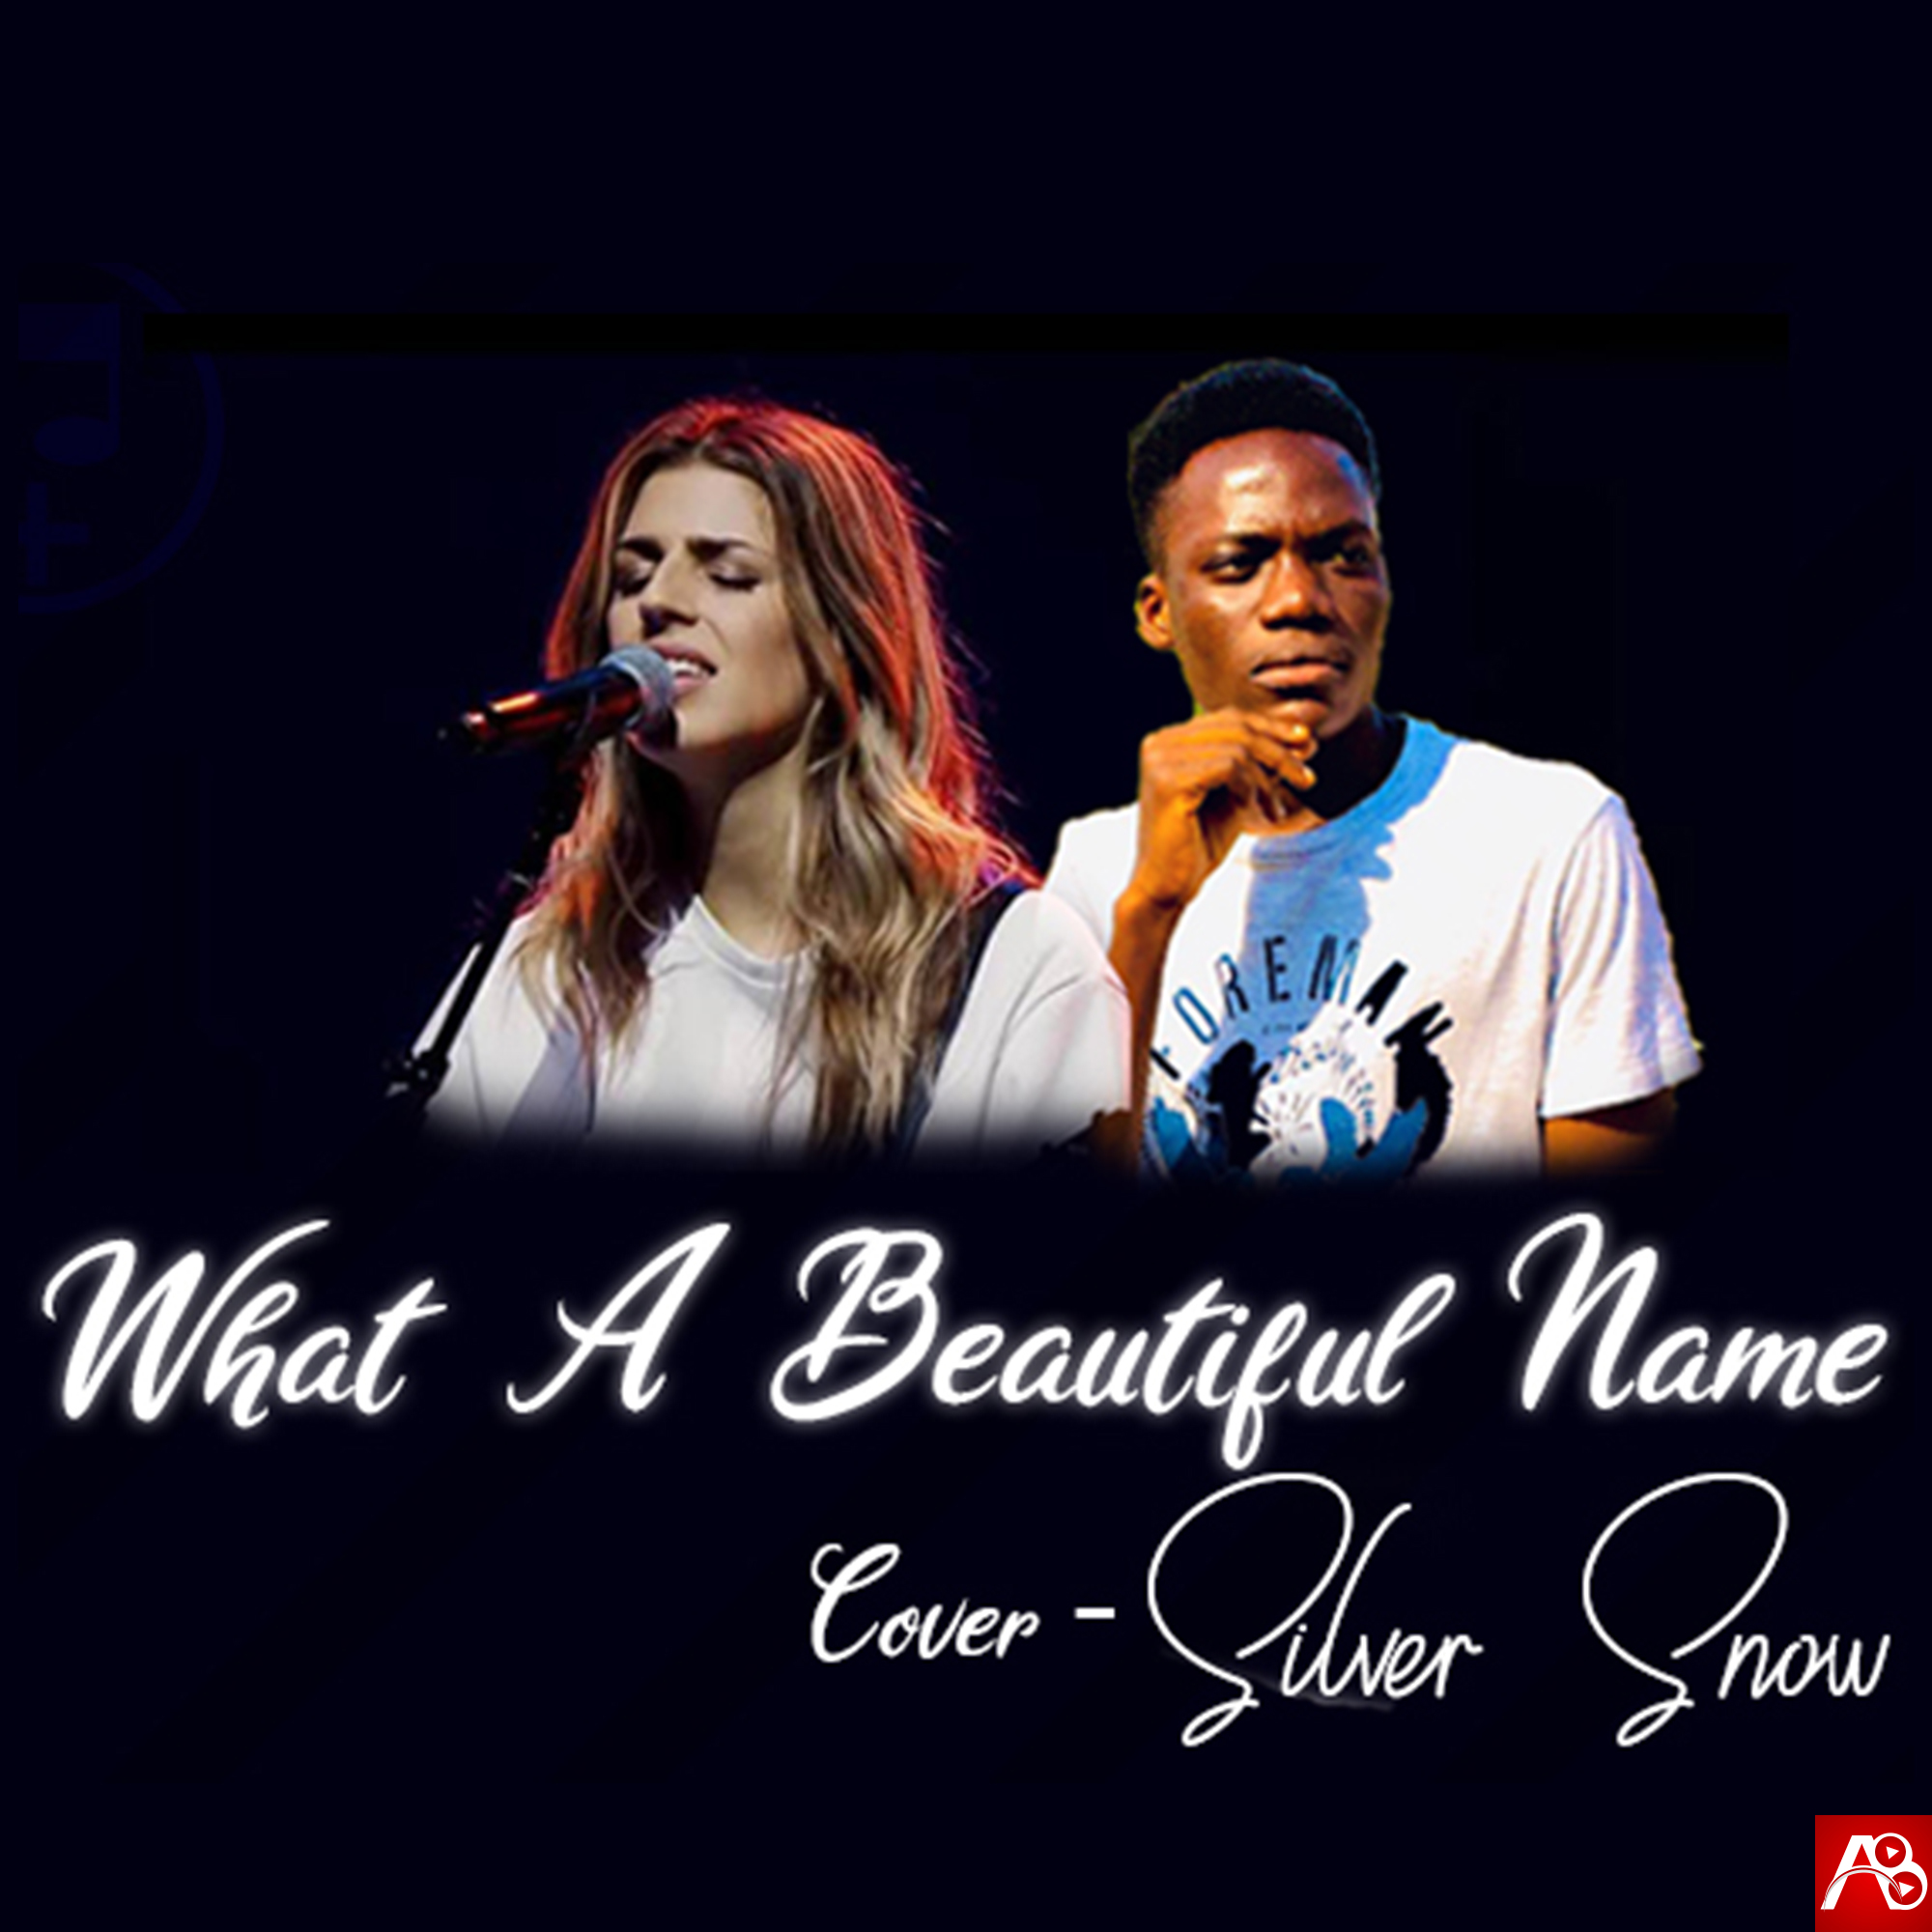 Silver Snow Rap cover of What a Beautiful name